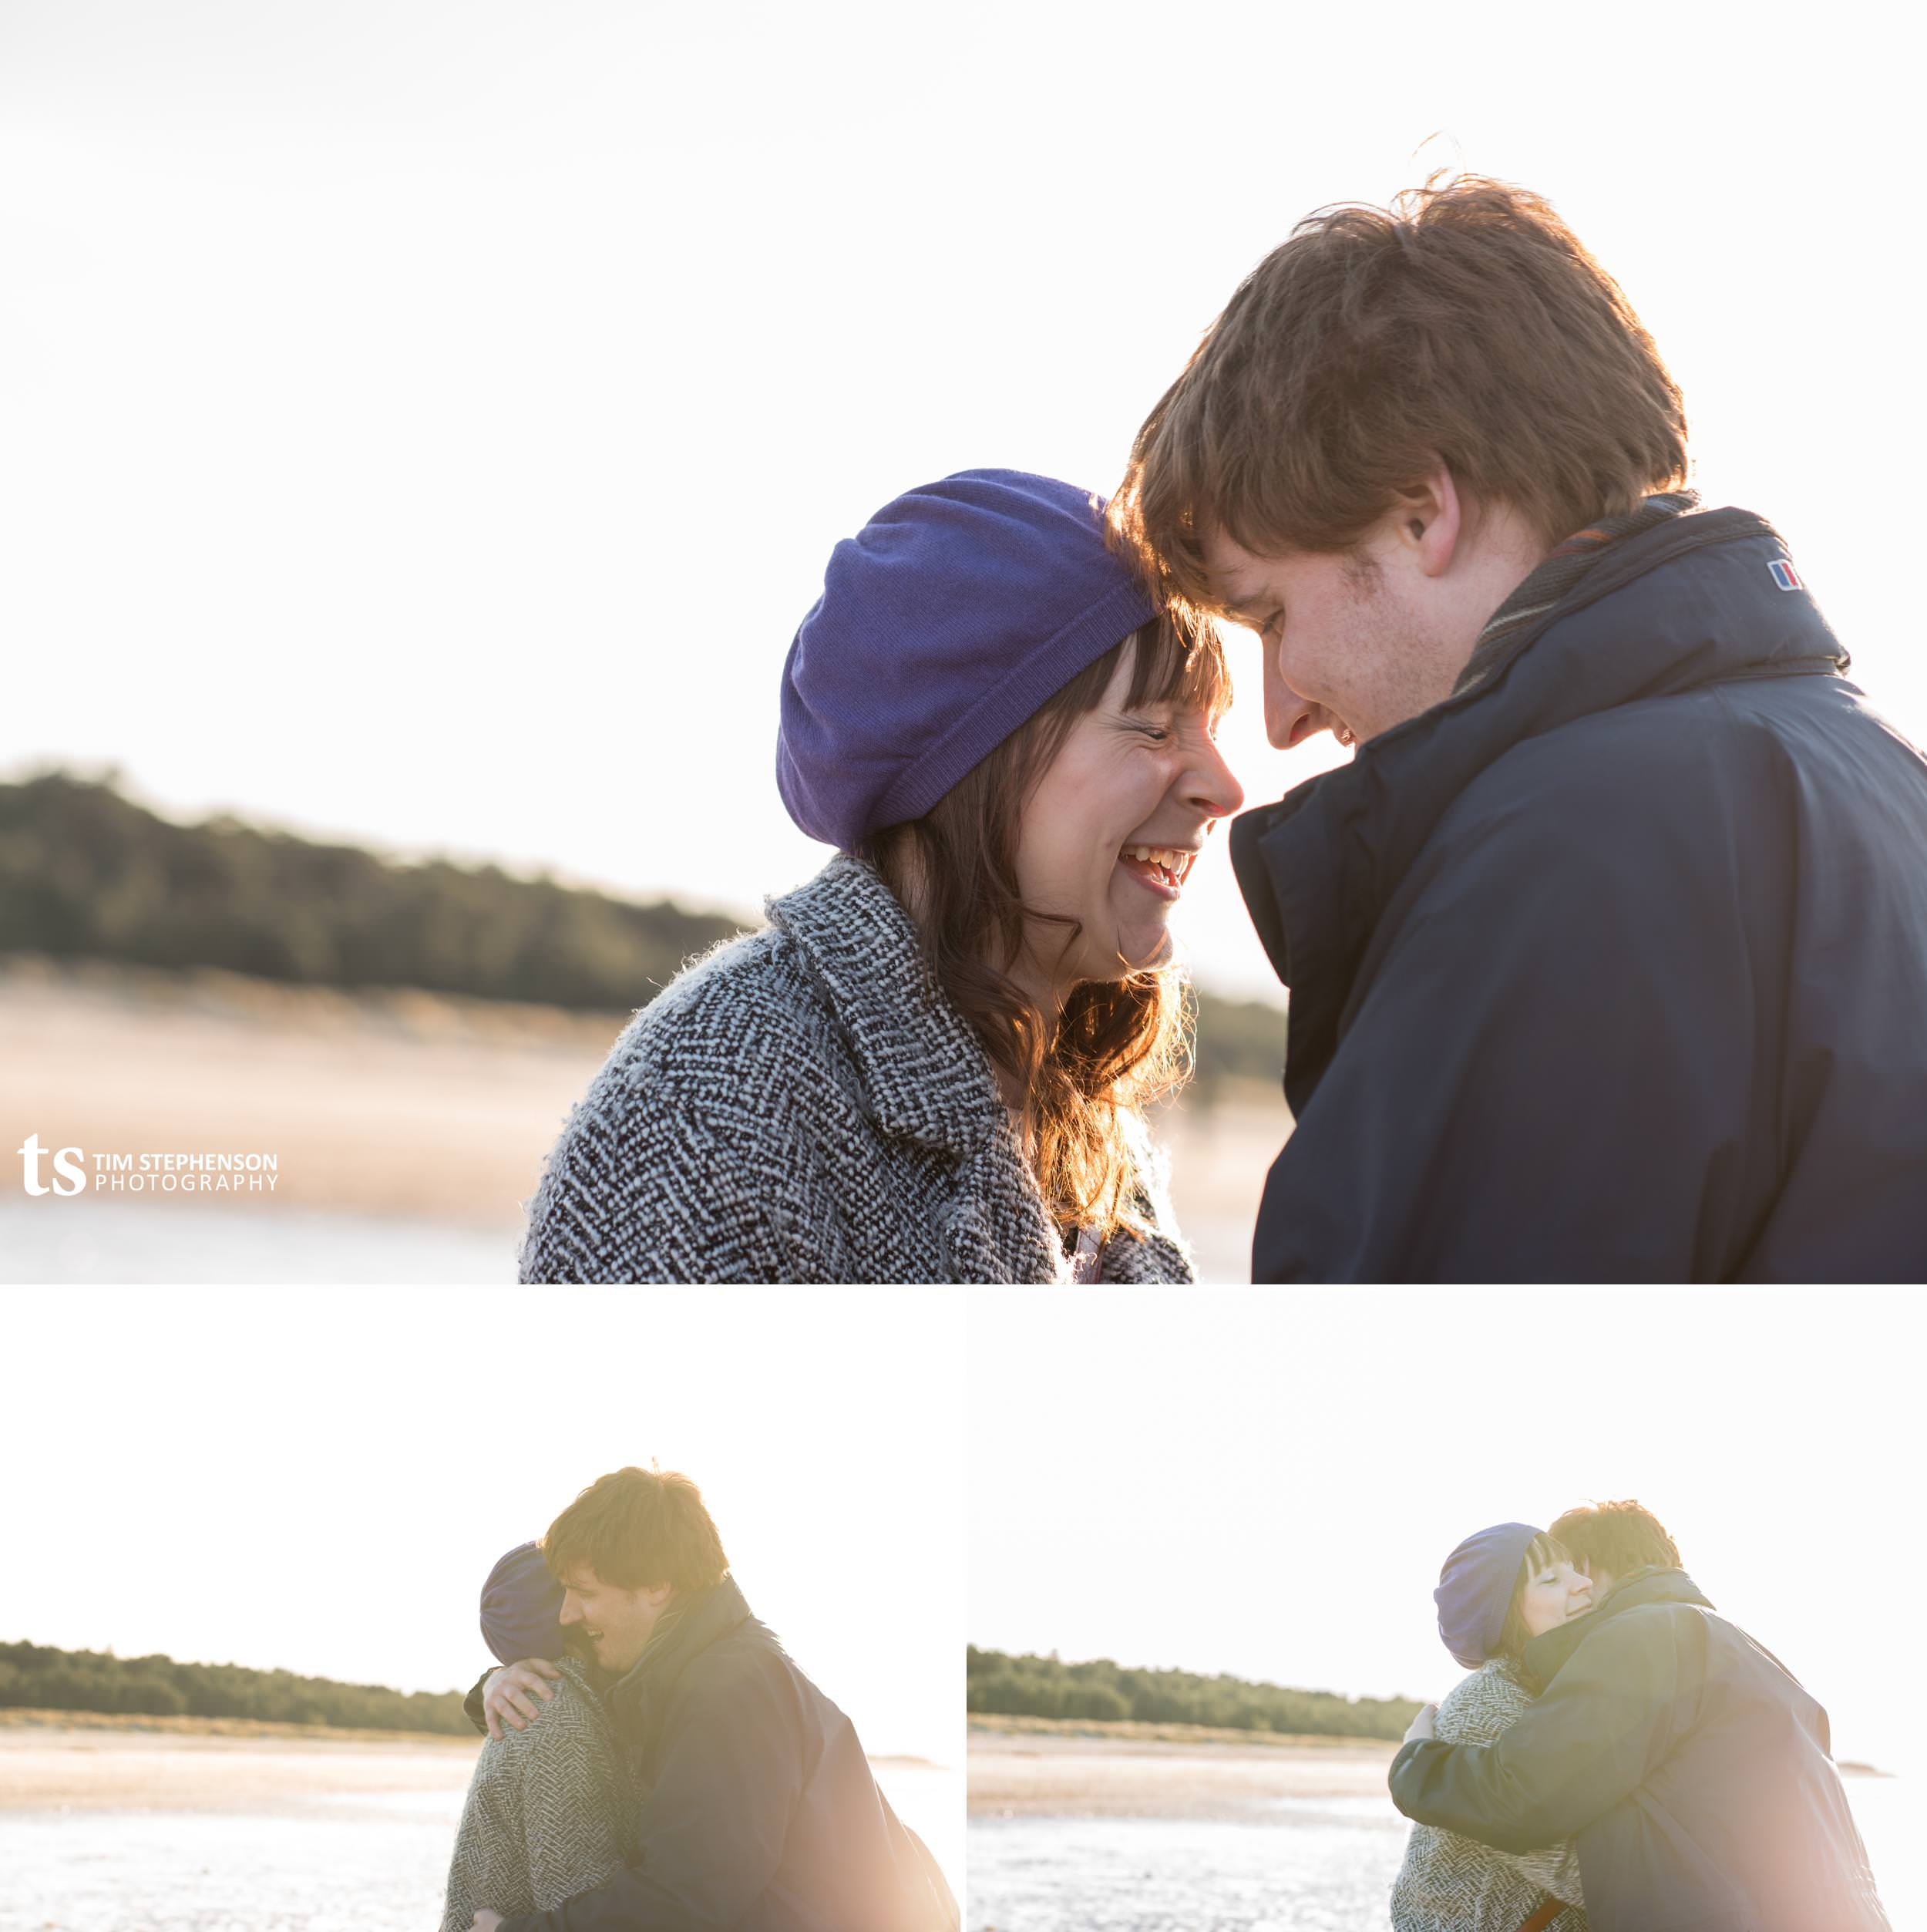 Rosie-Ben-Norfolk-Engagement-Photography 4